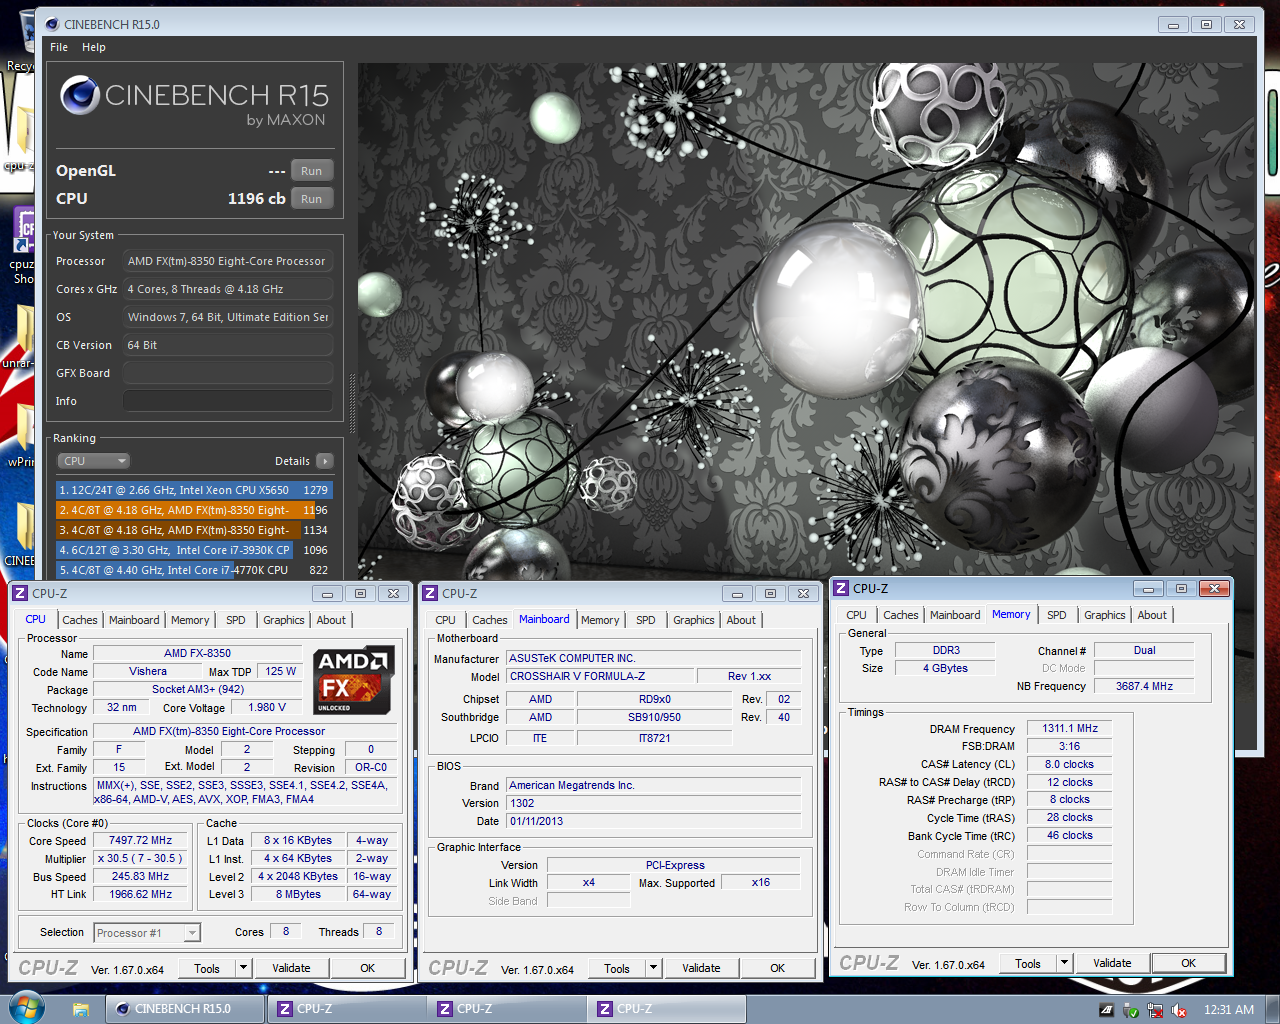 l0ud_sil3nc3`s Cinebench - R15 score: 1196 cb with a FX-8350